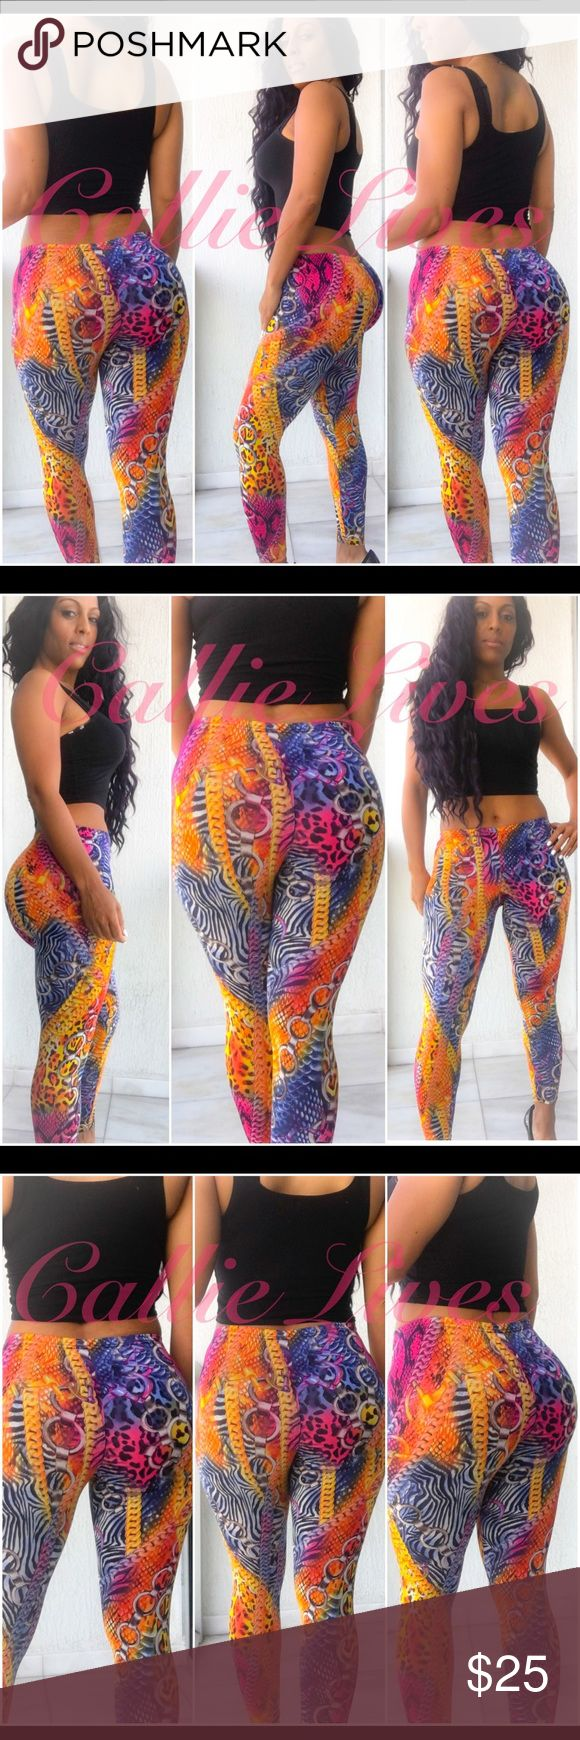 """Bodycon Silky Leggings Rainbow Chain Animal Print PRICE IS NEGOTIABLE. USE OFFER BUTTON. Bodycon Silky mix... not like cotton. I'm wearing this size and I'm 42.5 inches in the hips. Do not purchase these if your hips are bigger than 42.5 inches. Tag Size: L/XL But they Fit More Like Medium/Large for Women size 7-9 Measured Laid Flat (Double for Minimum fit) Waist 14"""" Hips 17"""" Length 35"""" Inseam 28"""" These leggings should fit a Waist 26""""-32"""" and Hips 34""""-42"""". Callie Lives Pants Leggings"""